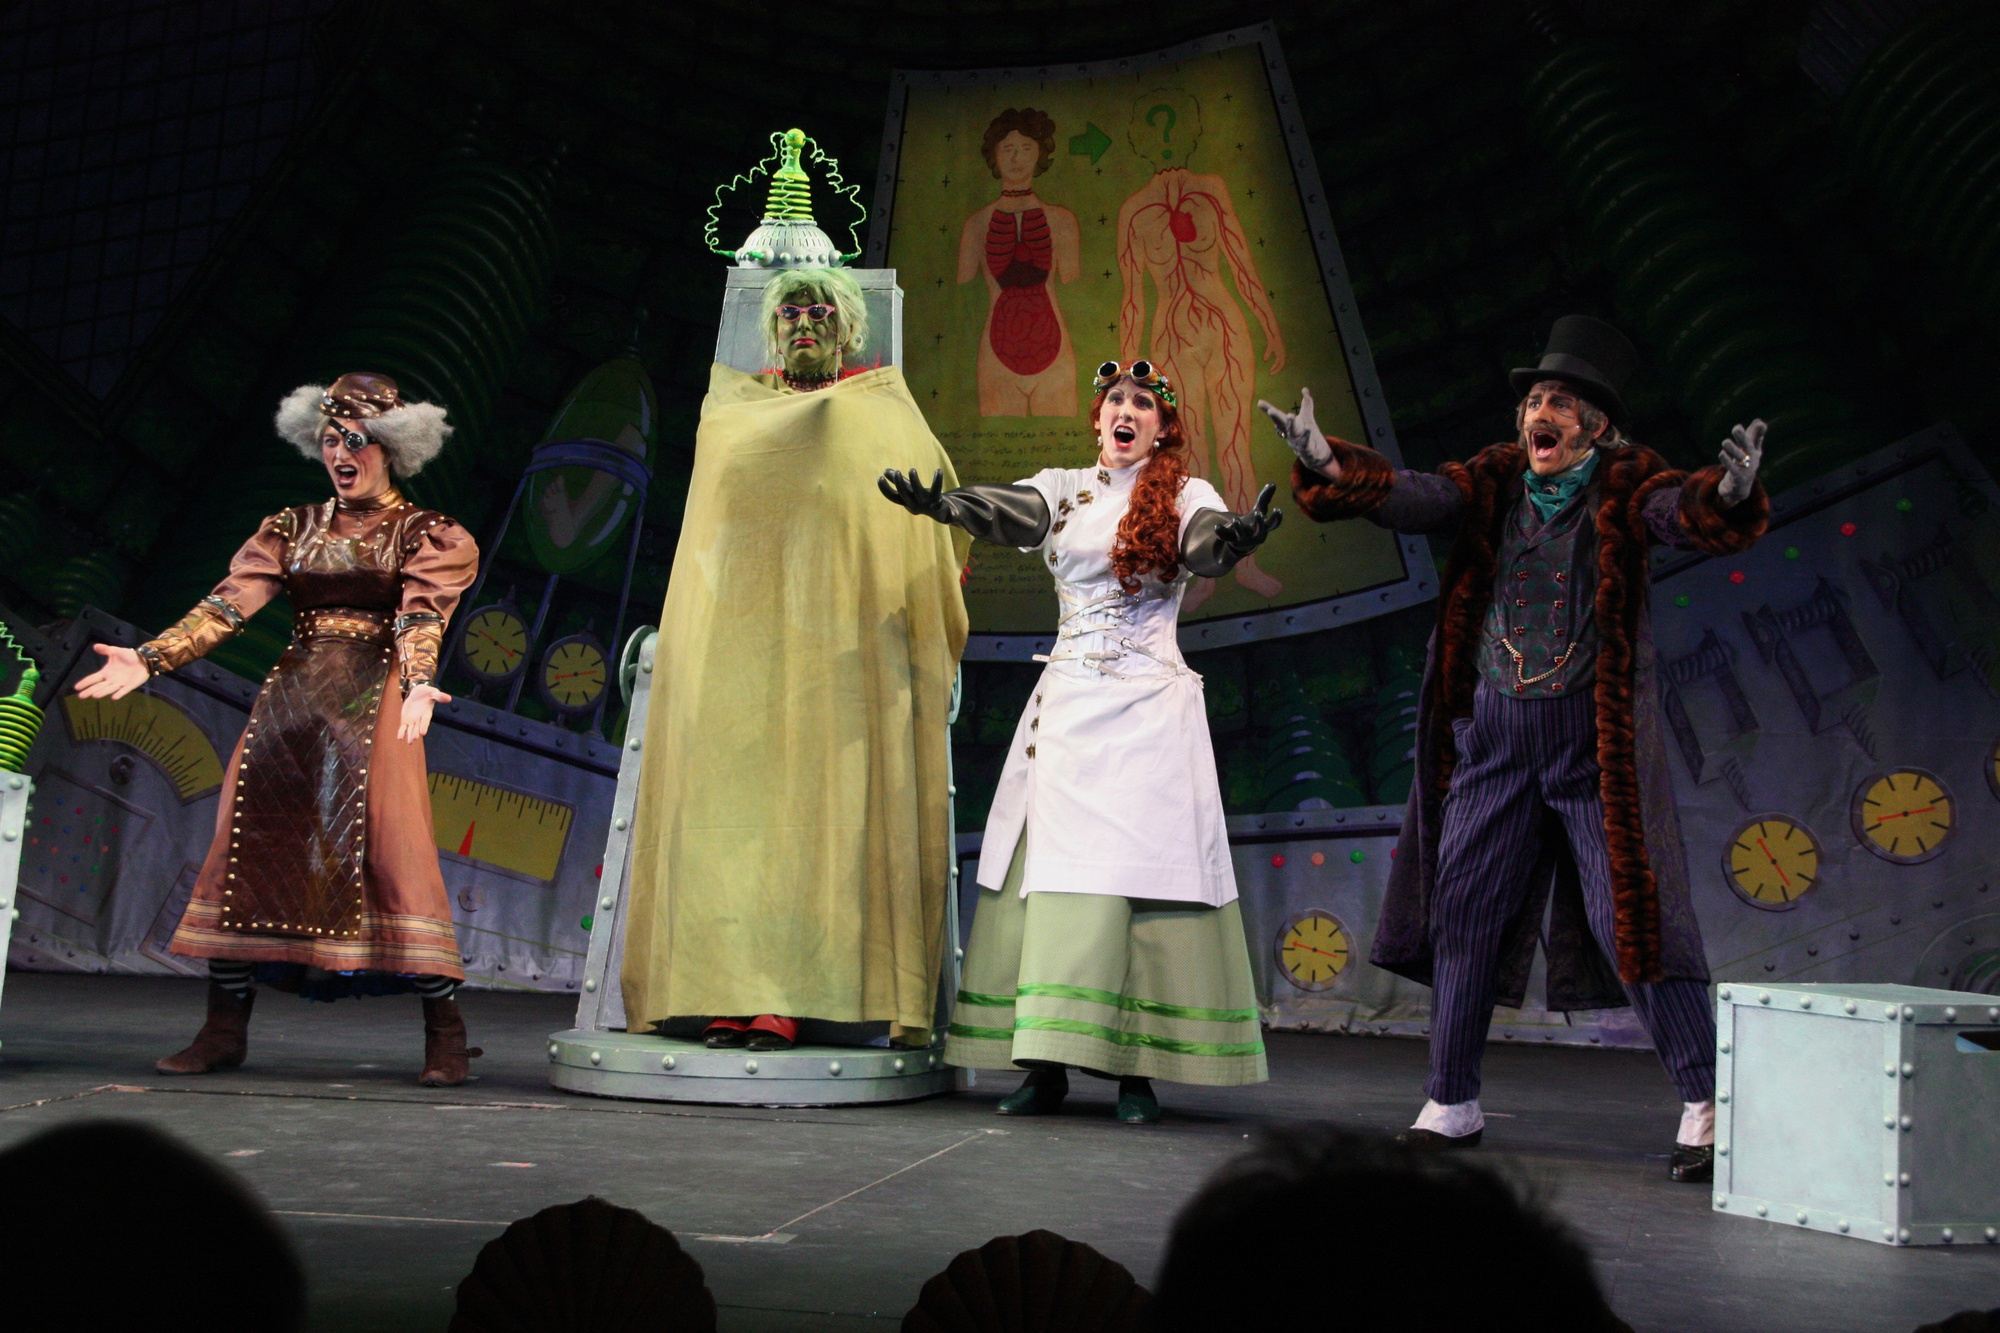 """Alex M. Willis '14, David A. Sheynberg '16, Karl Kopczynski '15, and Max McGillivray '16 perform in Hasty Pudding Theatricals' 166th production """"Victorian Secrets."""" As of Monday evening, 17 undergraduate women have been signing up for auditions for the group despite its traditional all-male cast."""